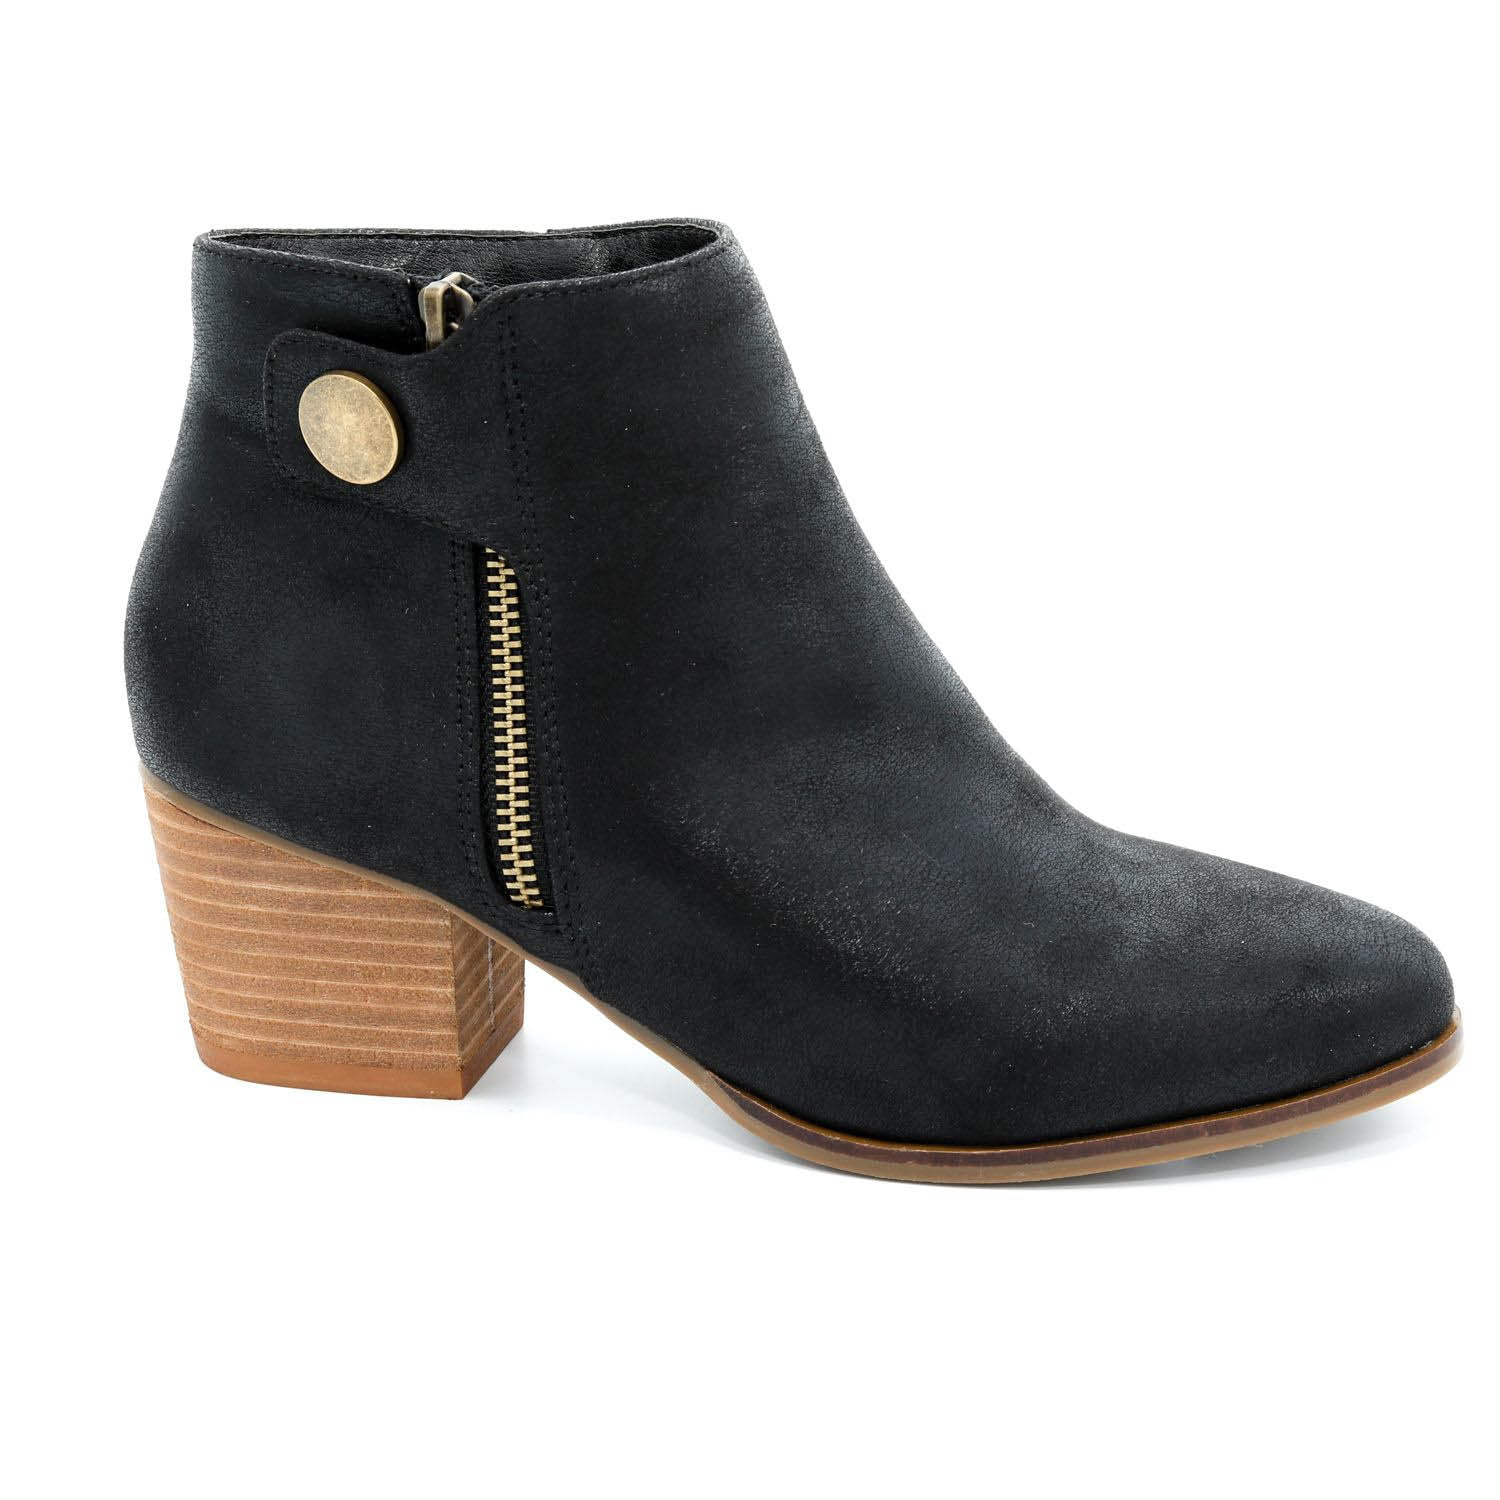 Clarissa Women's Ankle Boot